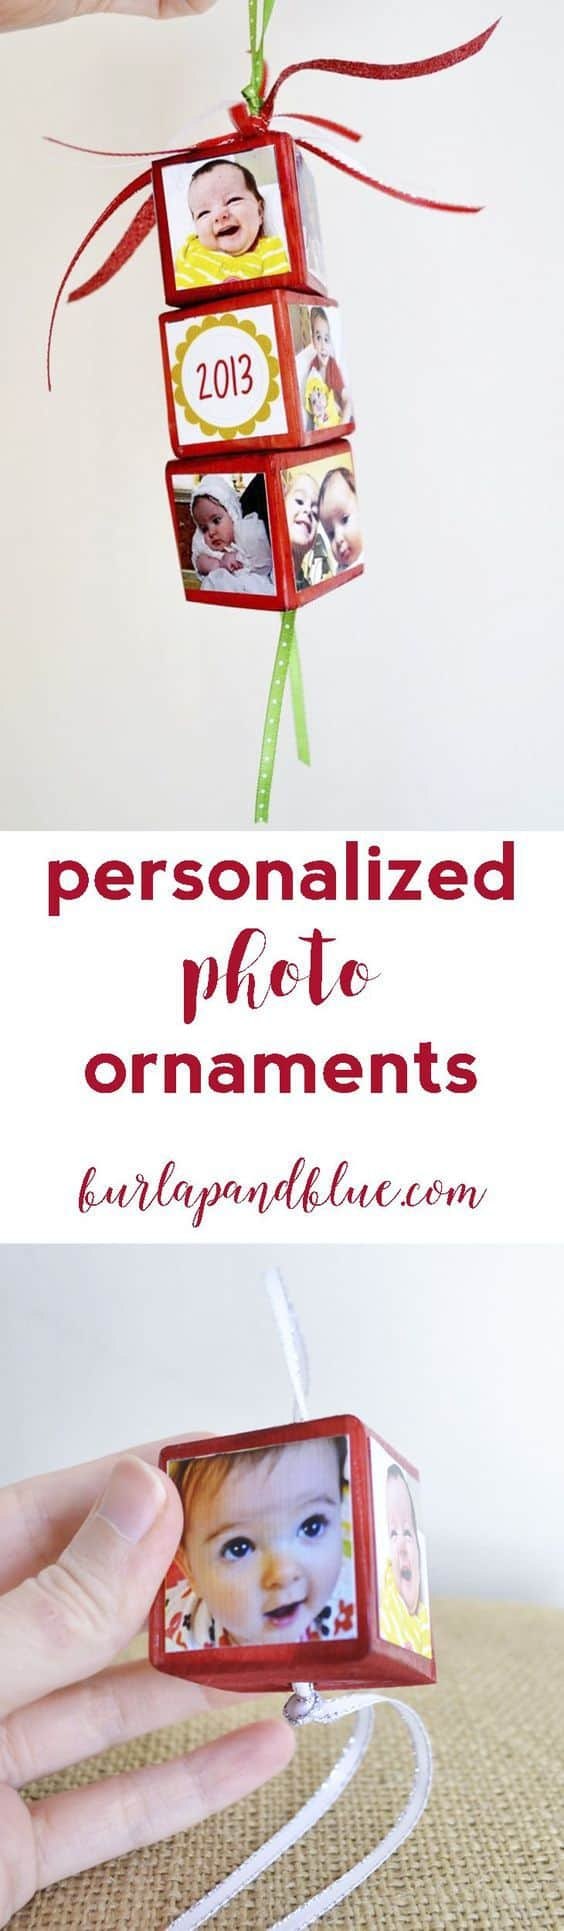 personalized photo ornaments are the perfect christmas gift idea